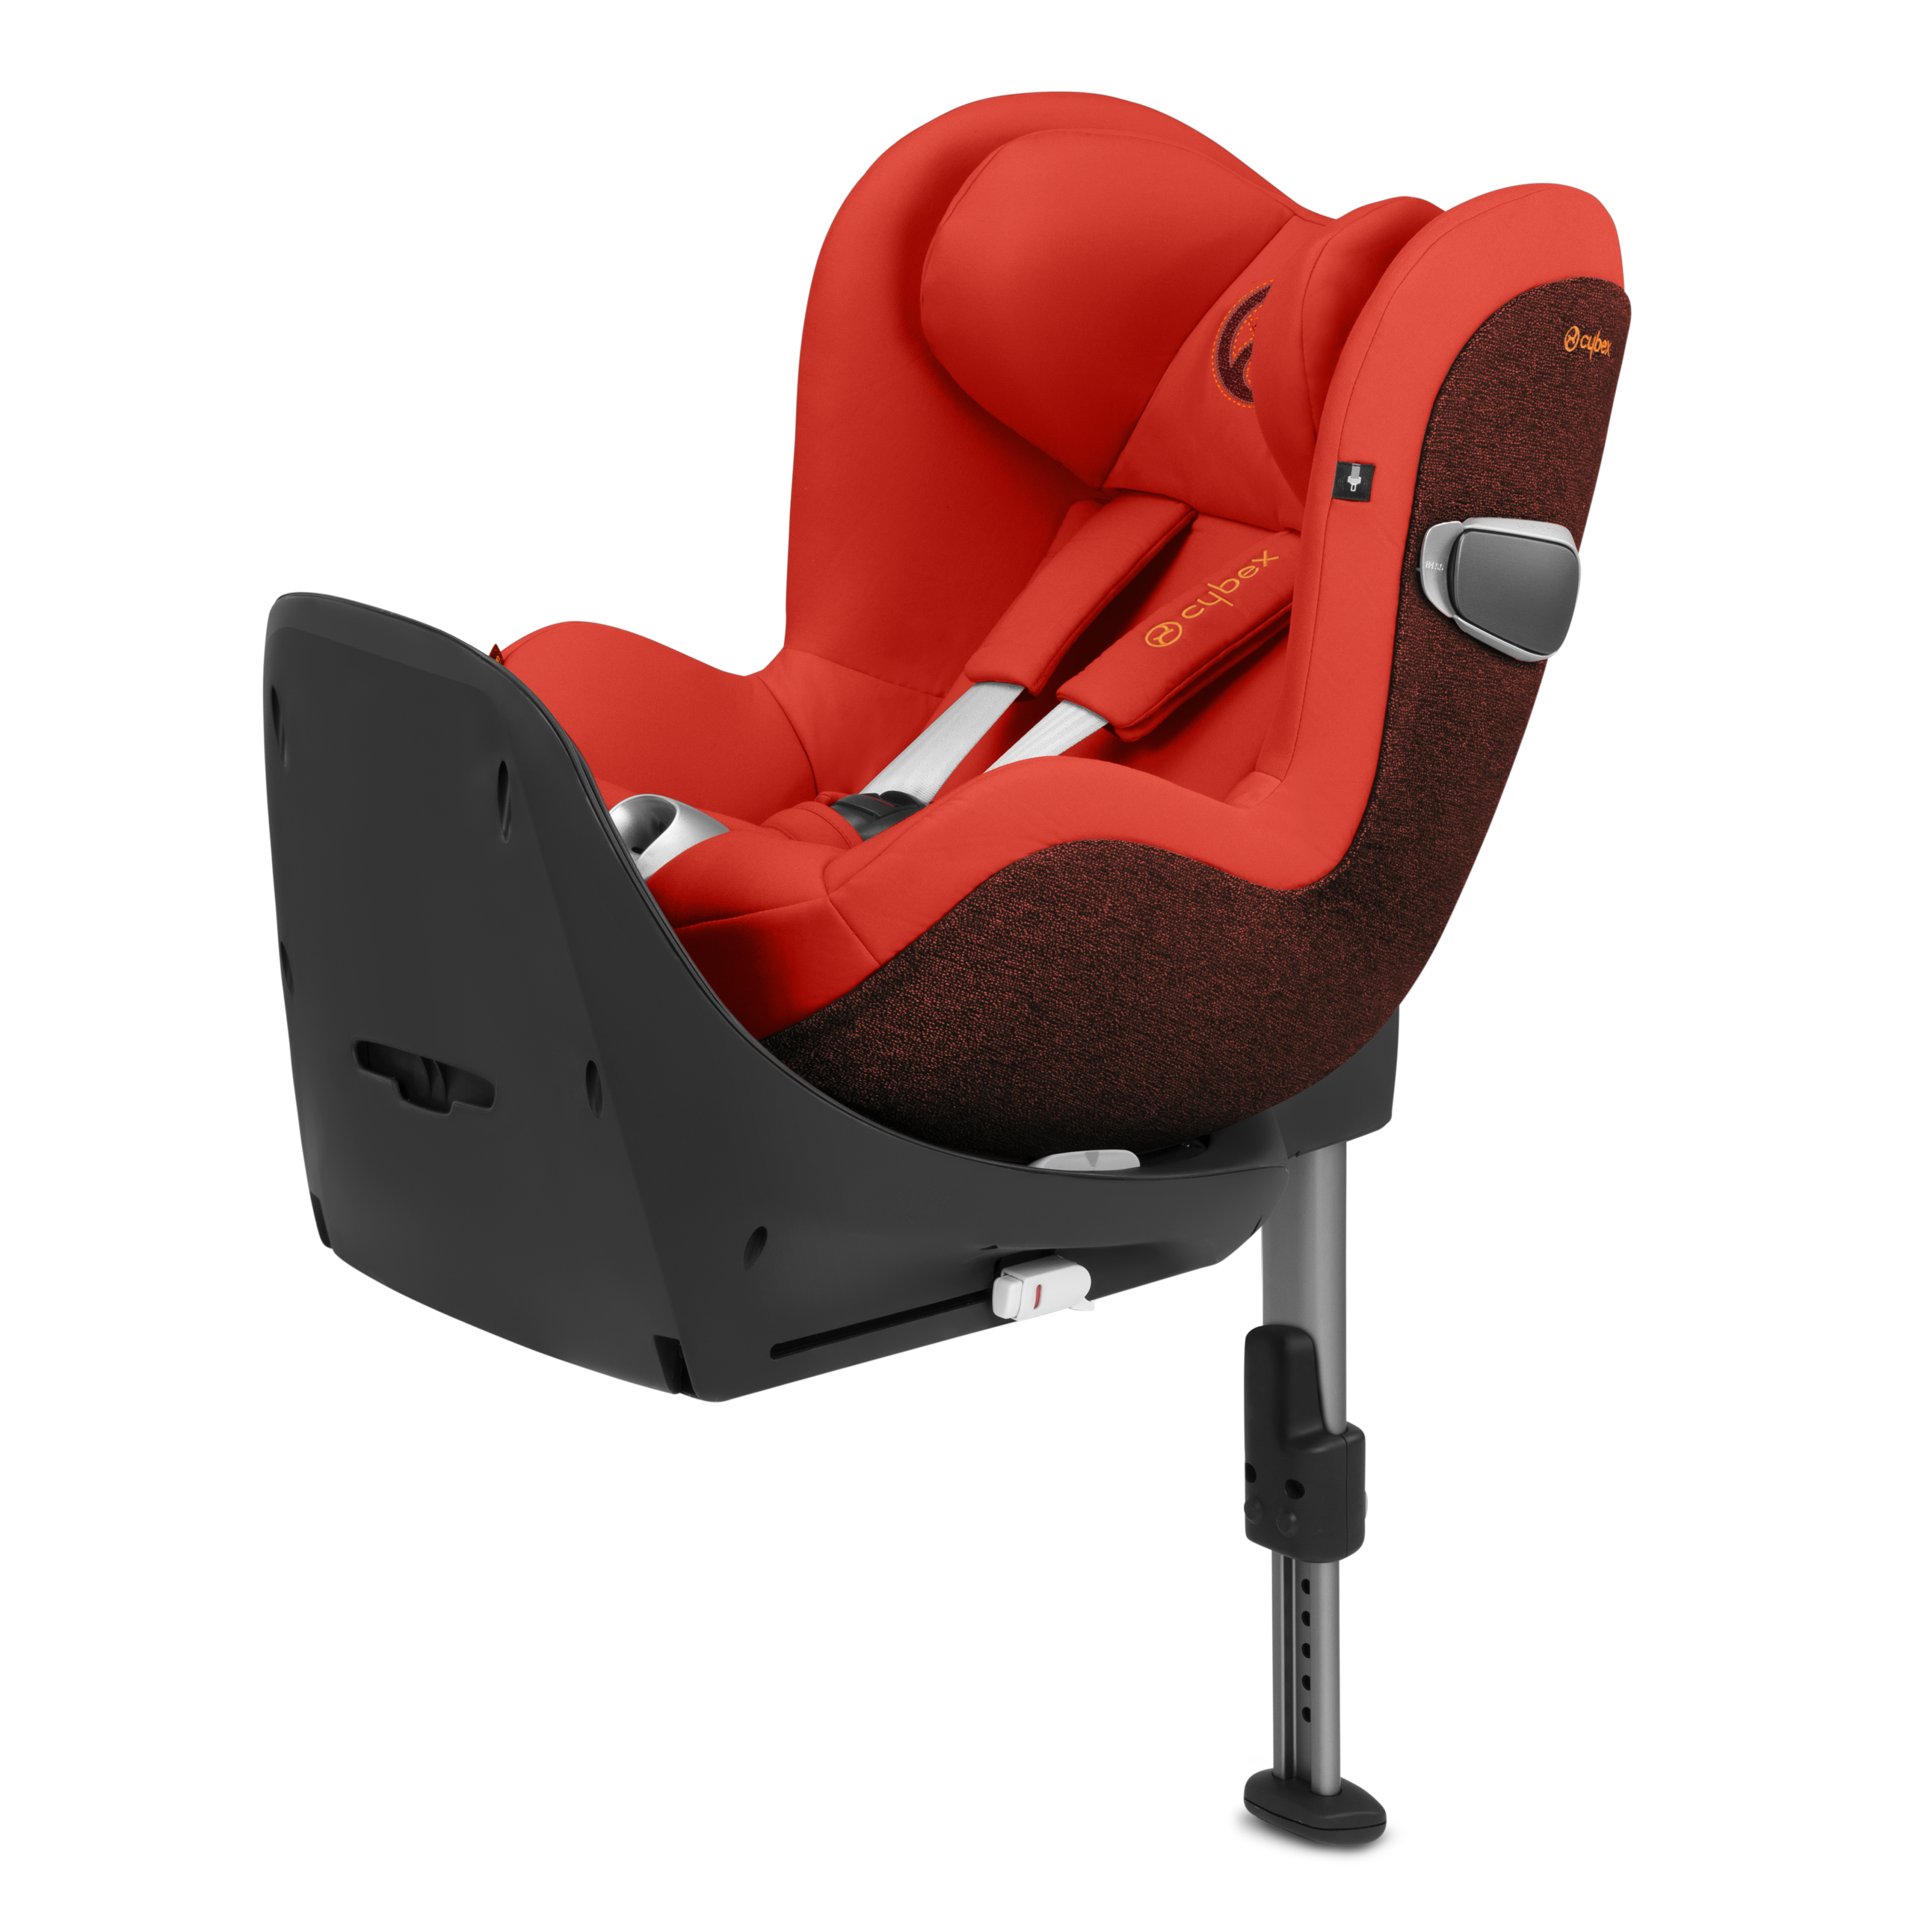 sirona z i size a flexible car seat for 0 4 year olds. Black Bedroom Furniture Sets. Home Design Ideas